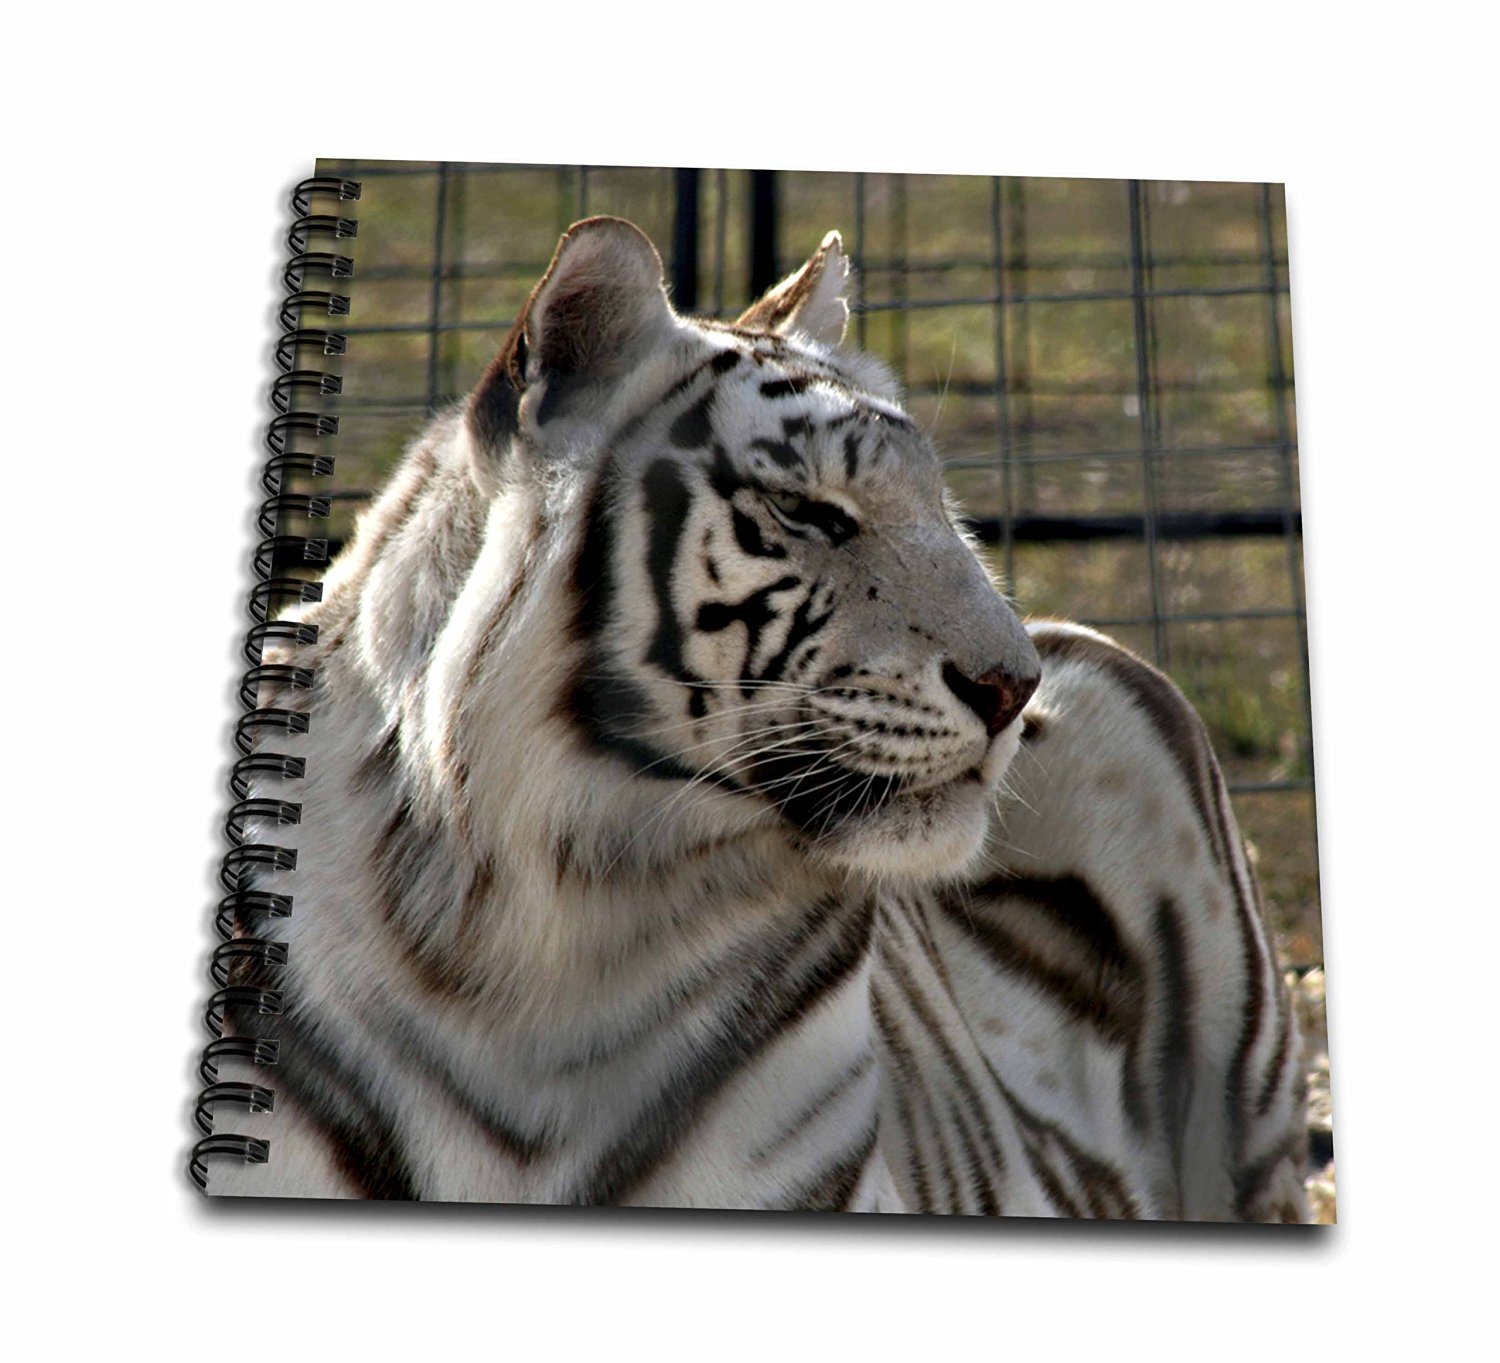 Susans Zoo Crew Animals - white tiger looking right - Memory Book 12 x 12 inch (db_184829_2)